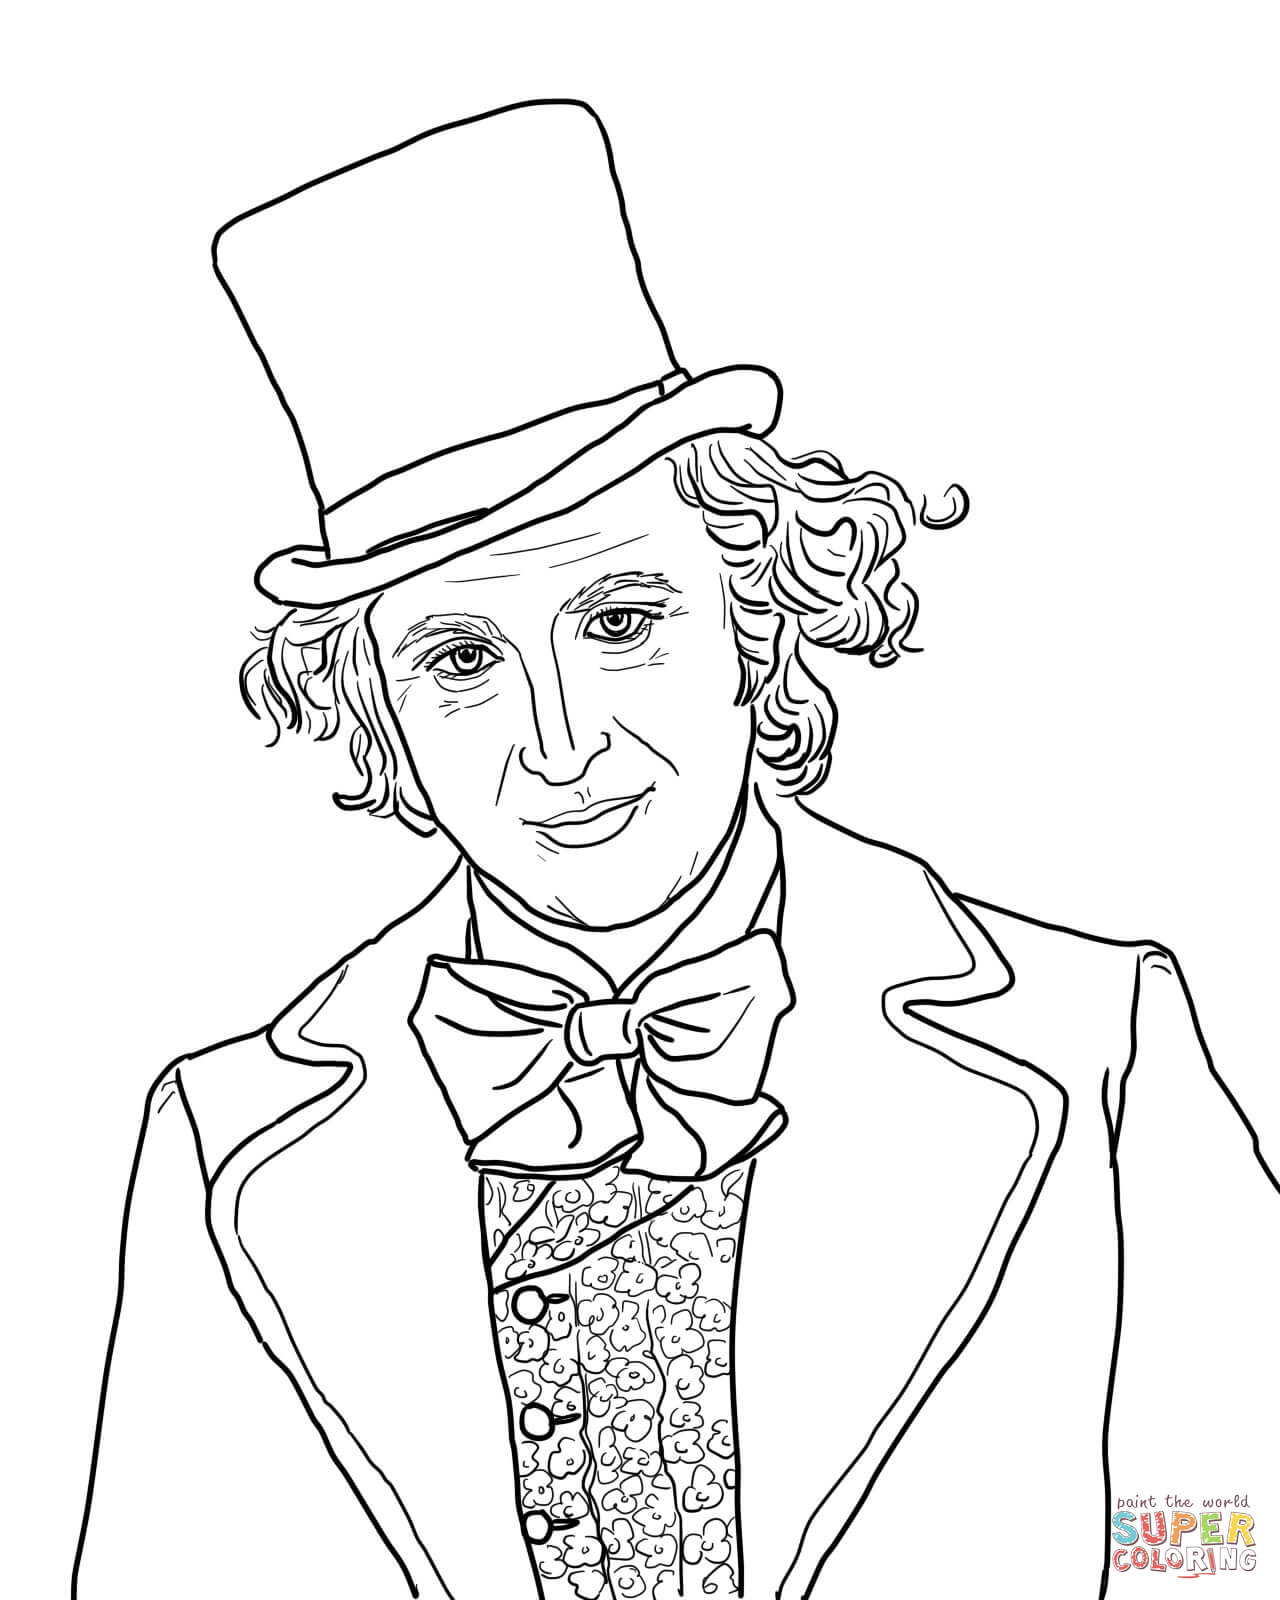 charlie and the chocolate factory coloring sheets charlie and the chocolate factory coloring page coloring charlie coloring the chocolate factory sheets and